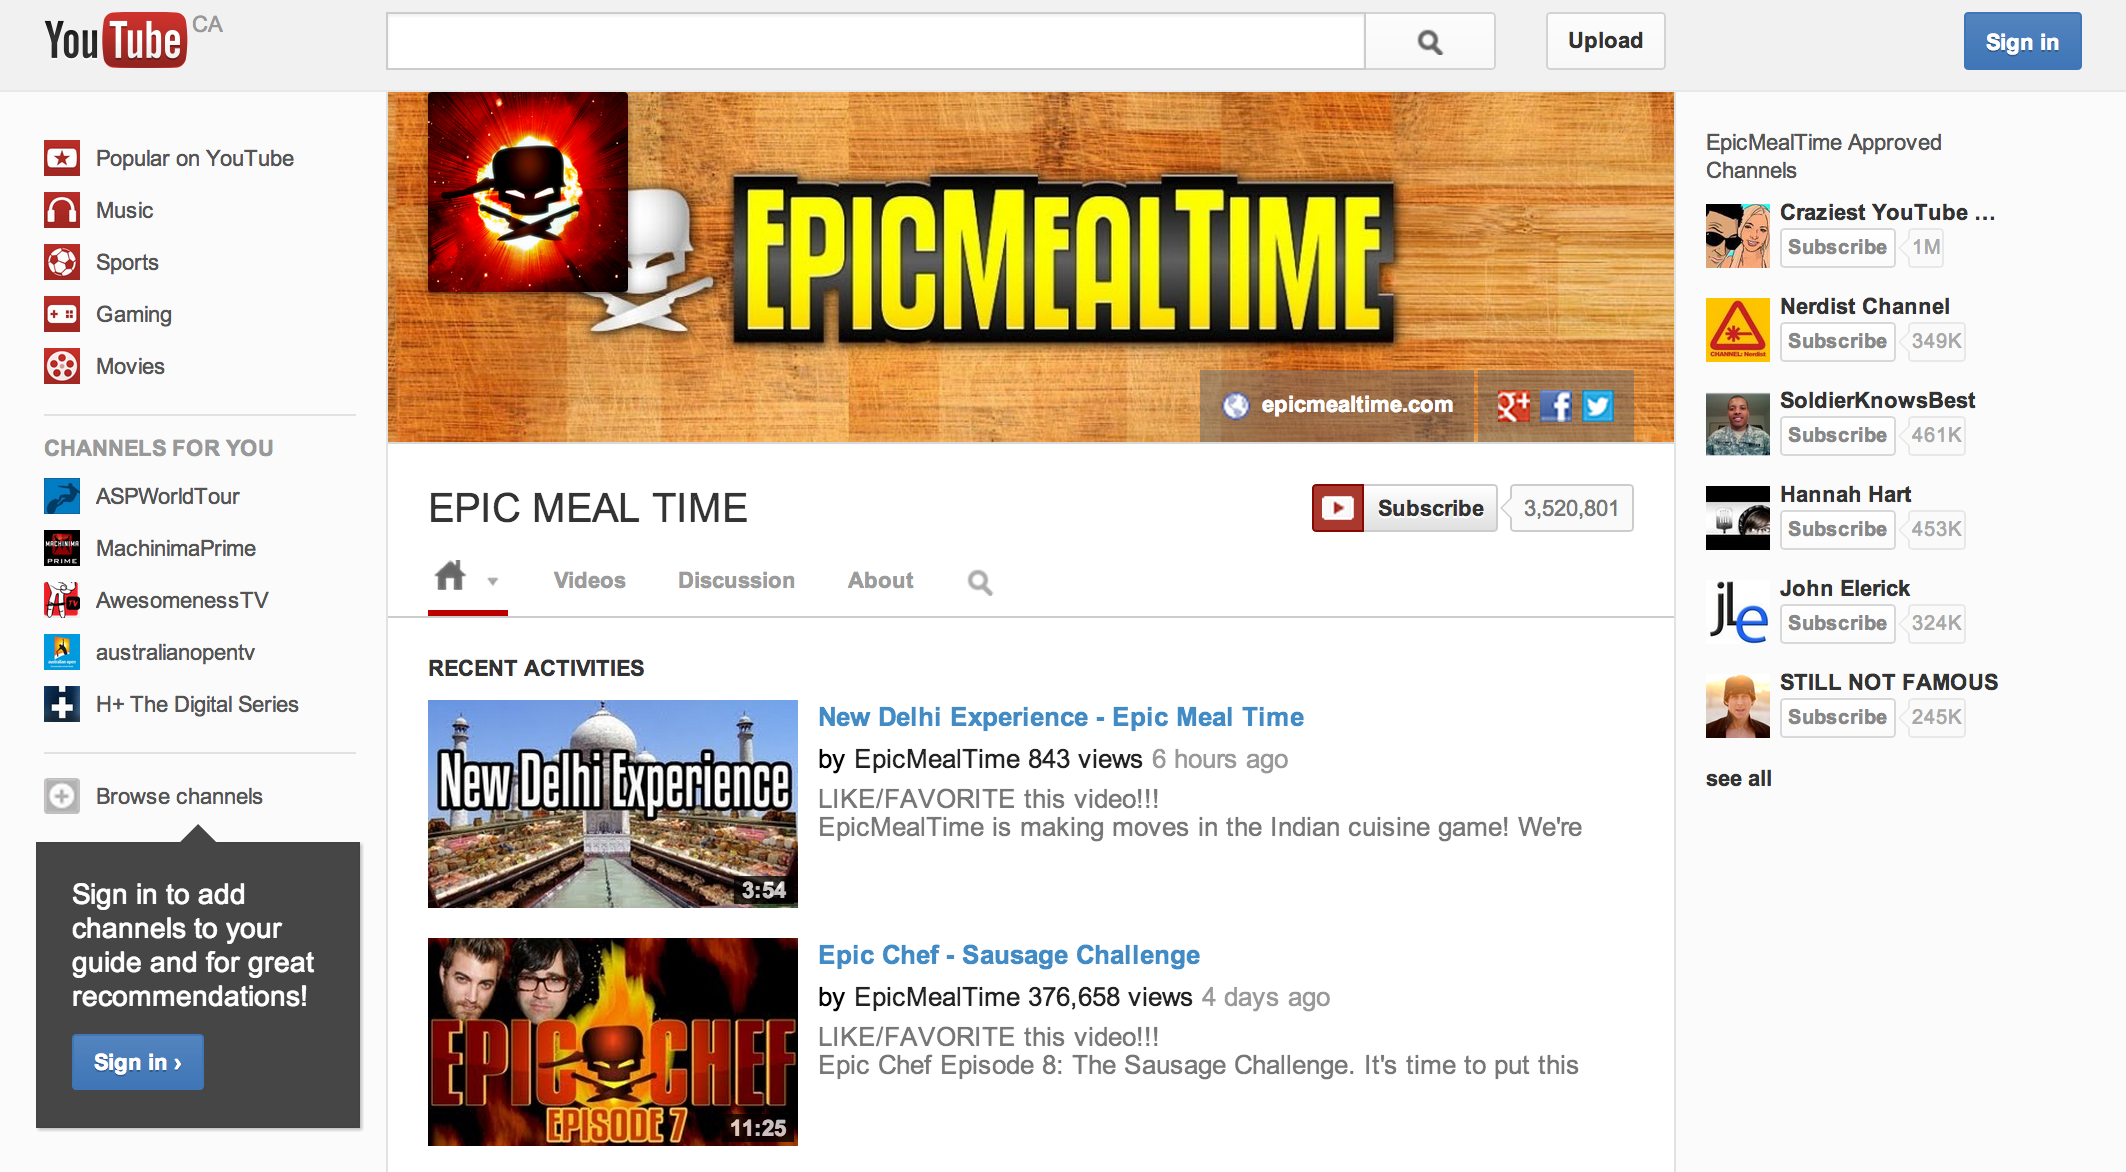 EpicMealTime-YouTubeOne-Channel-Design